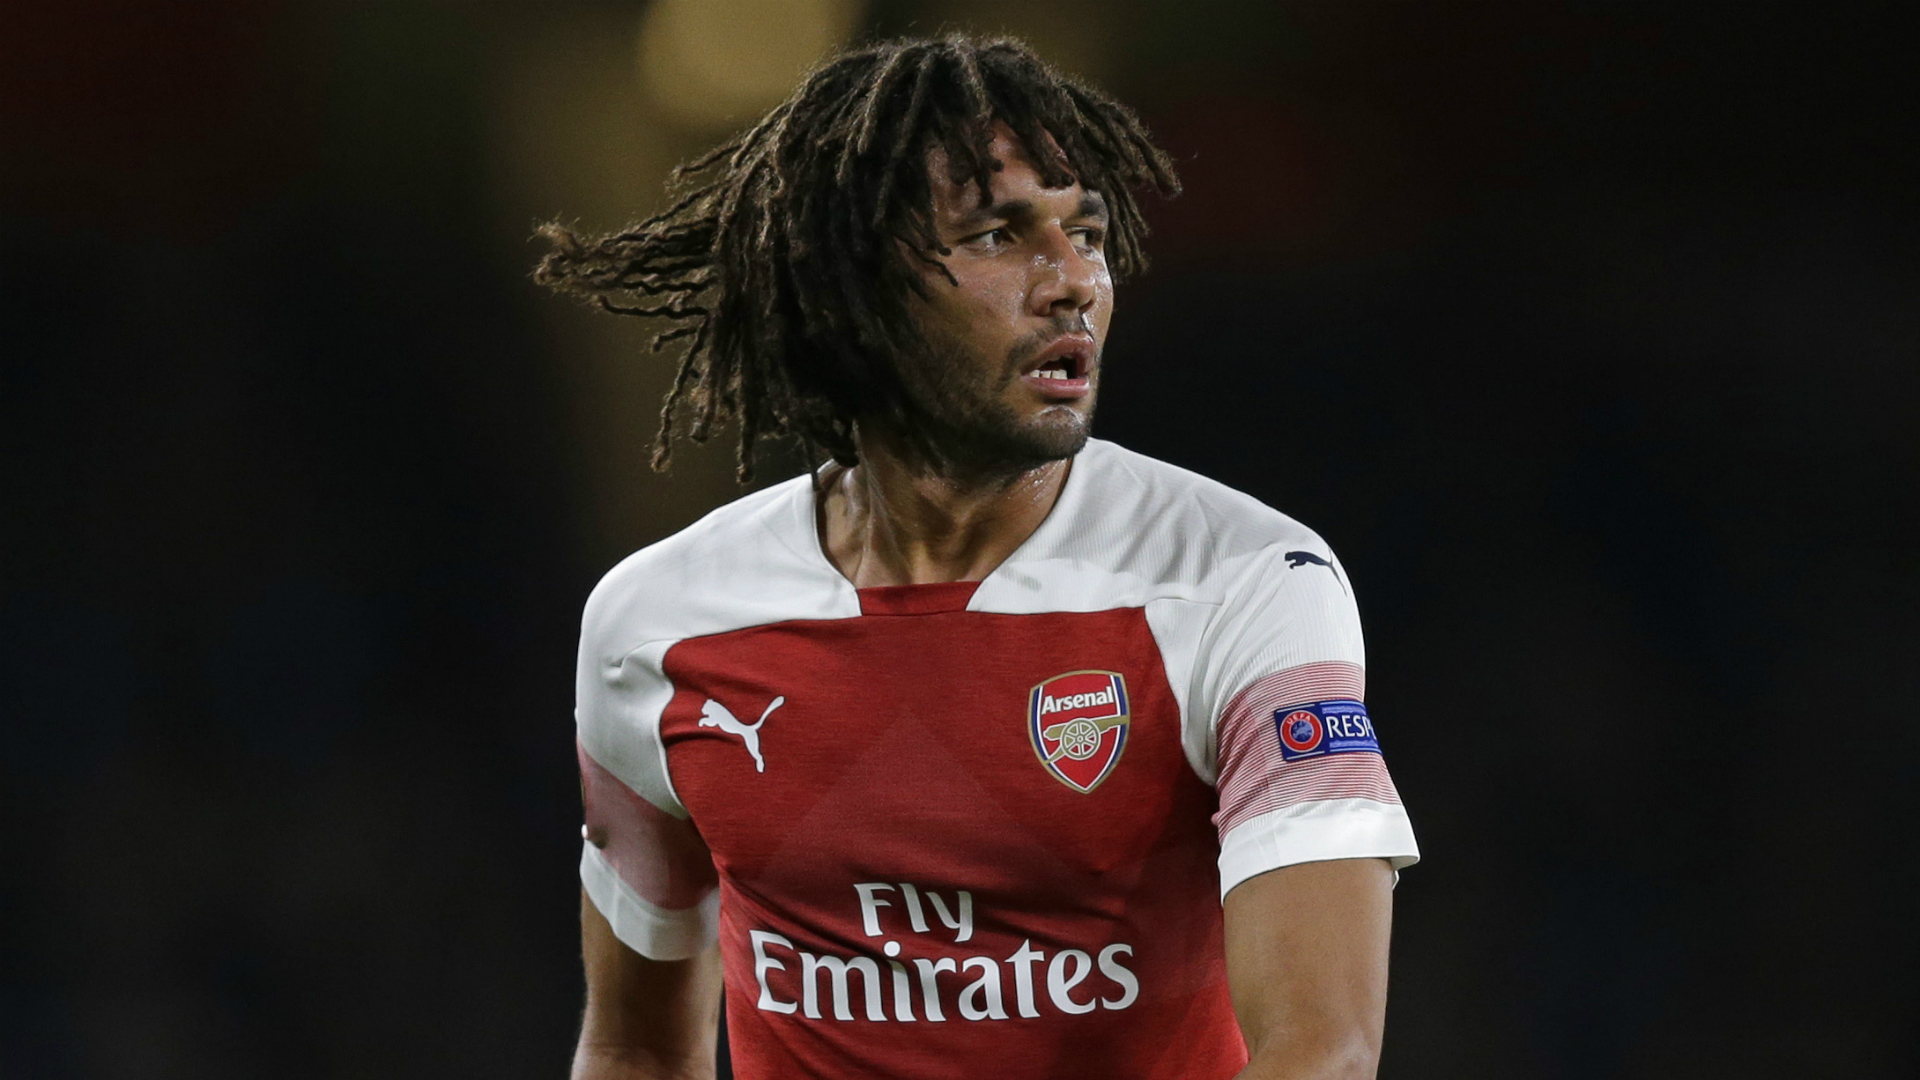 'I need to improve myself in everything' - Elneny on Arsenal drive